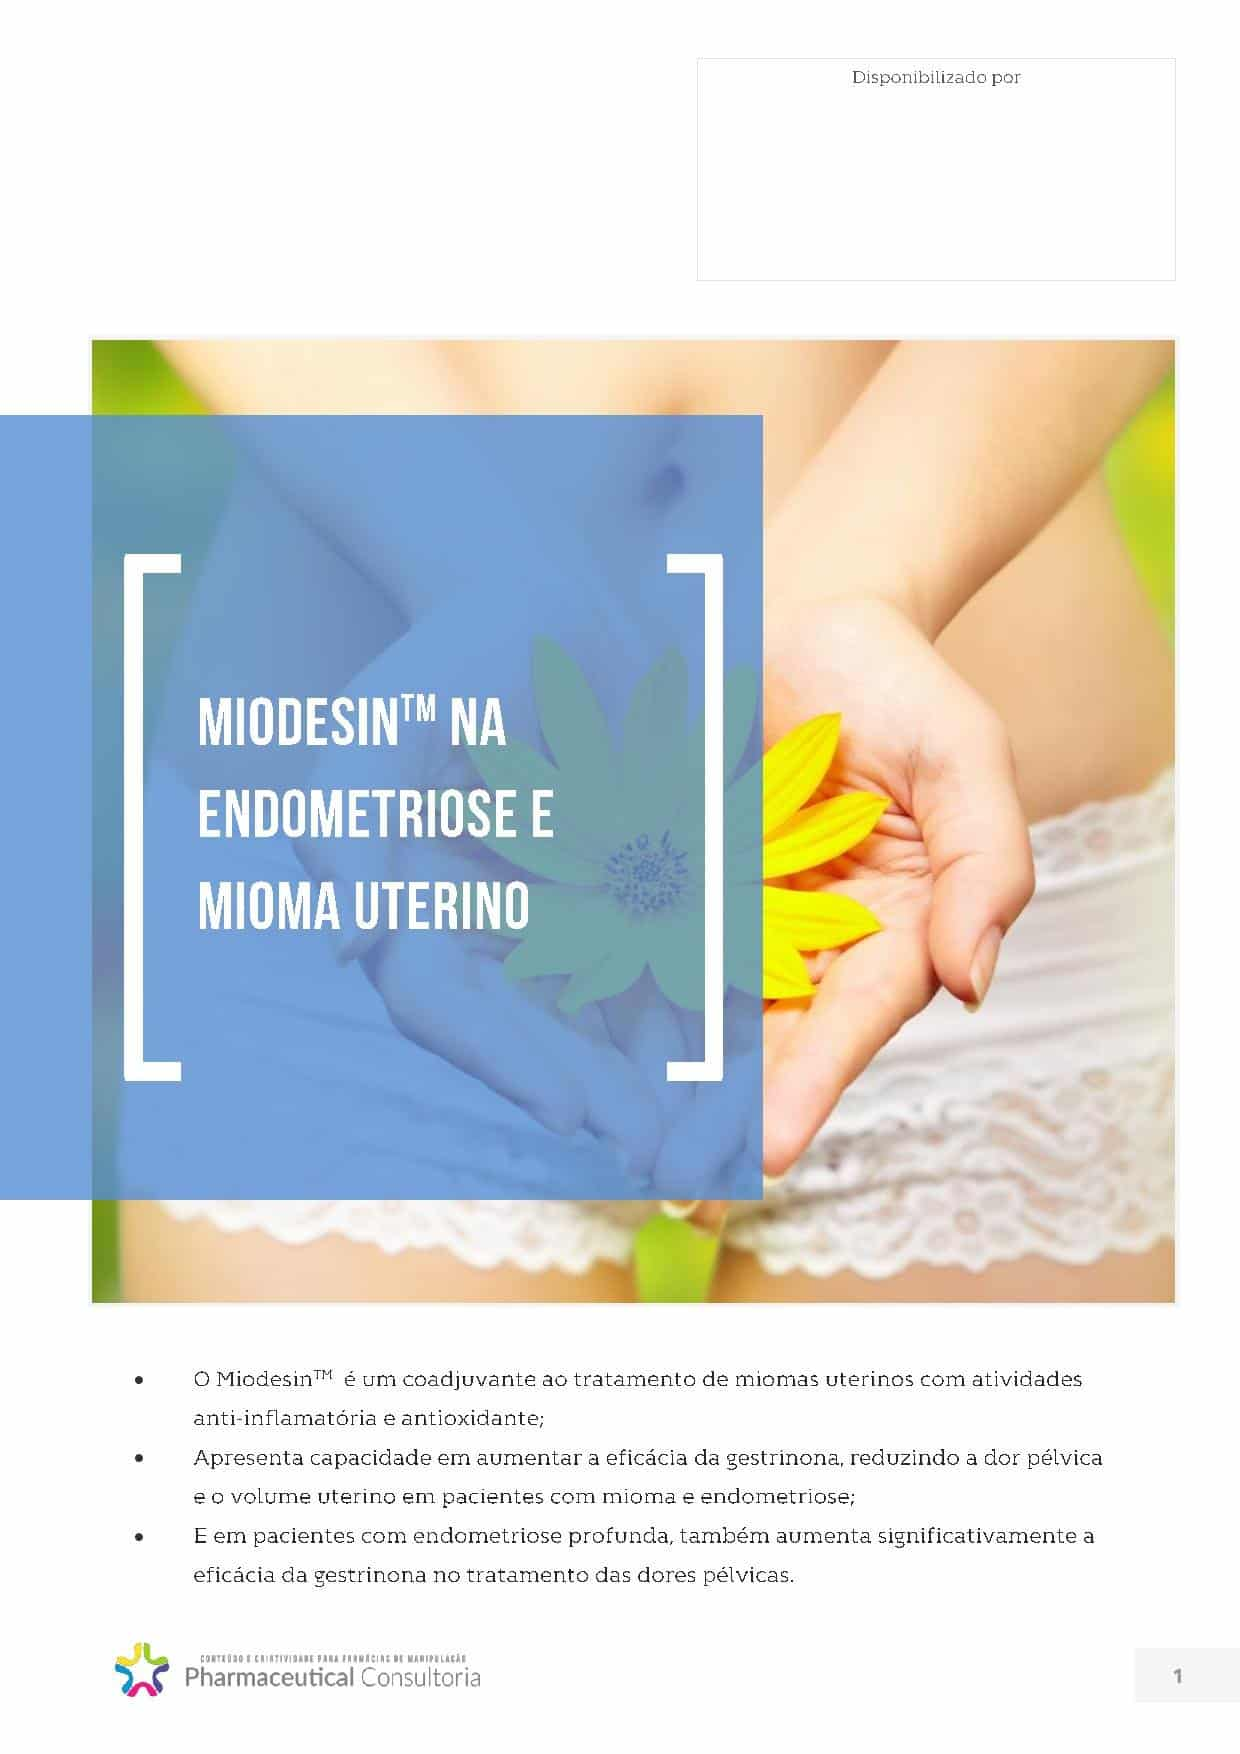 Miodesin na Endometriose e Mioma Uterino